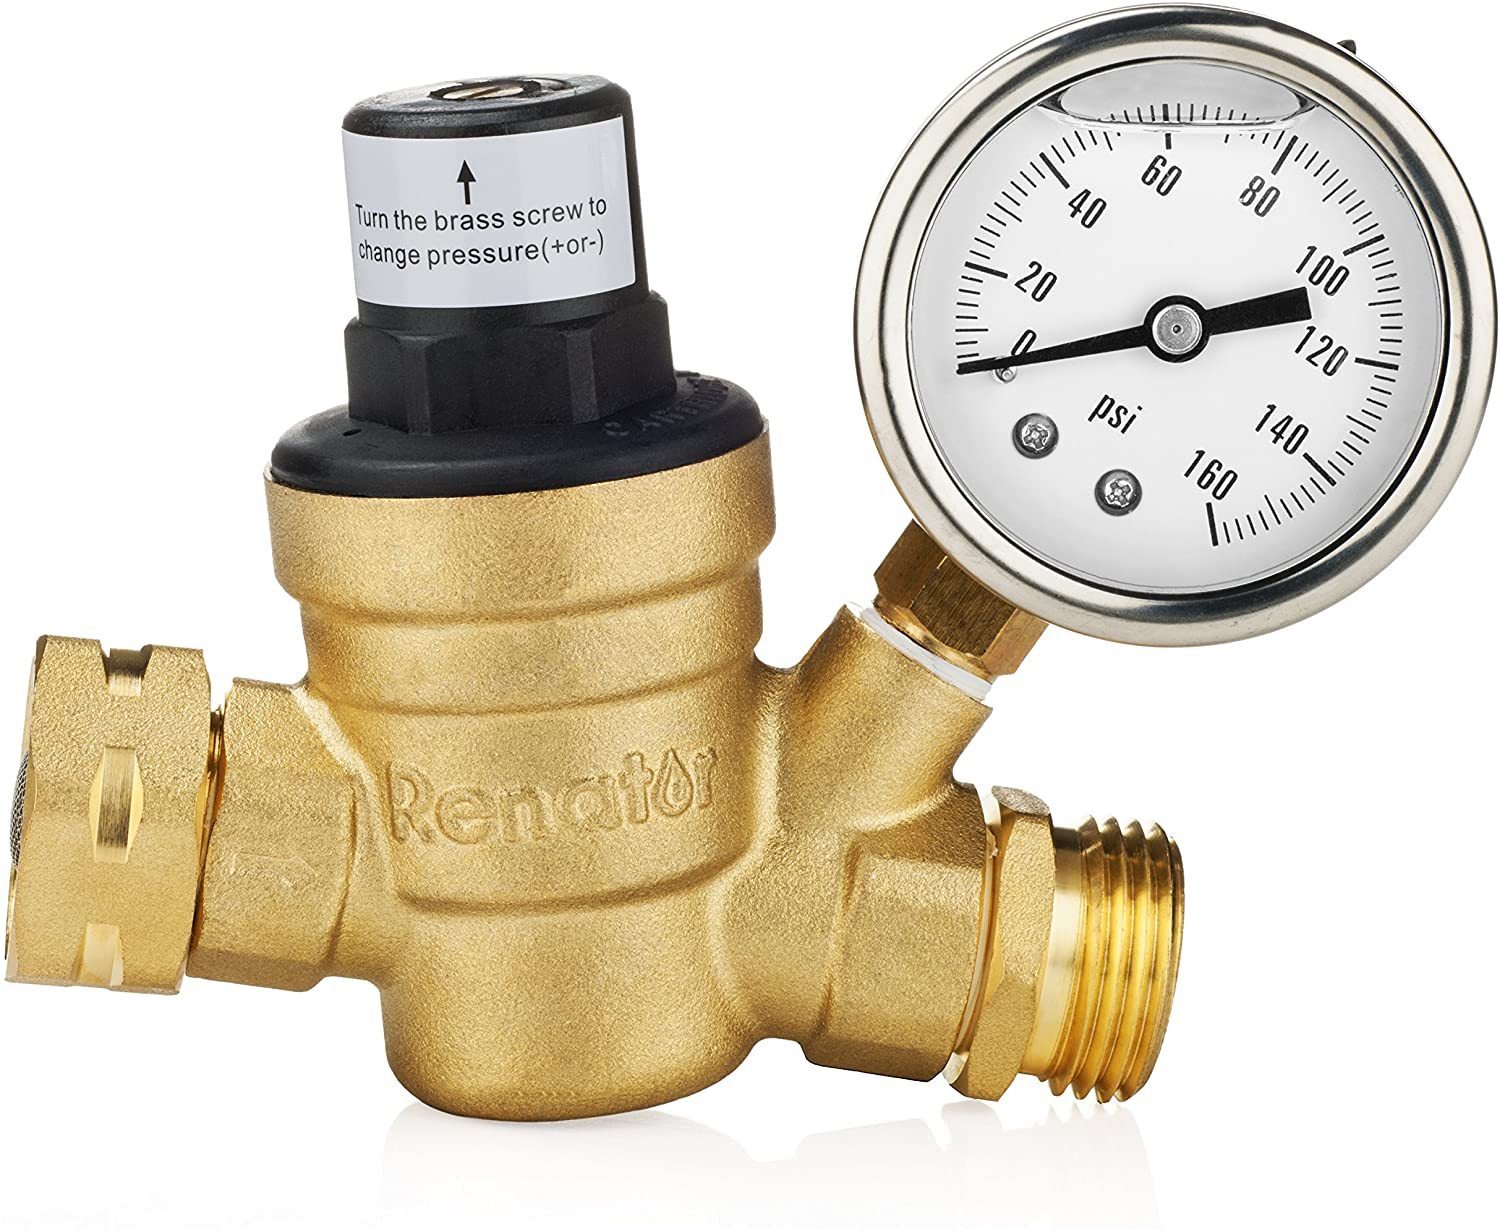 Renator M11-0660r Water Pressure Regulator Valve